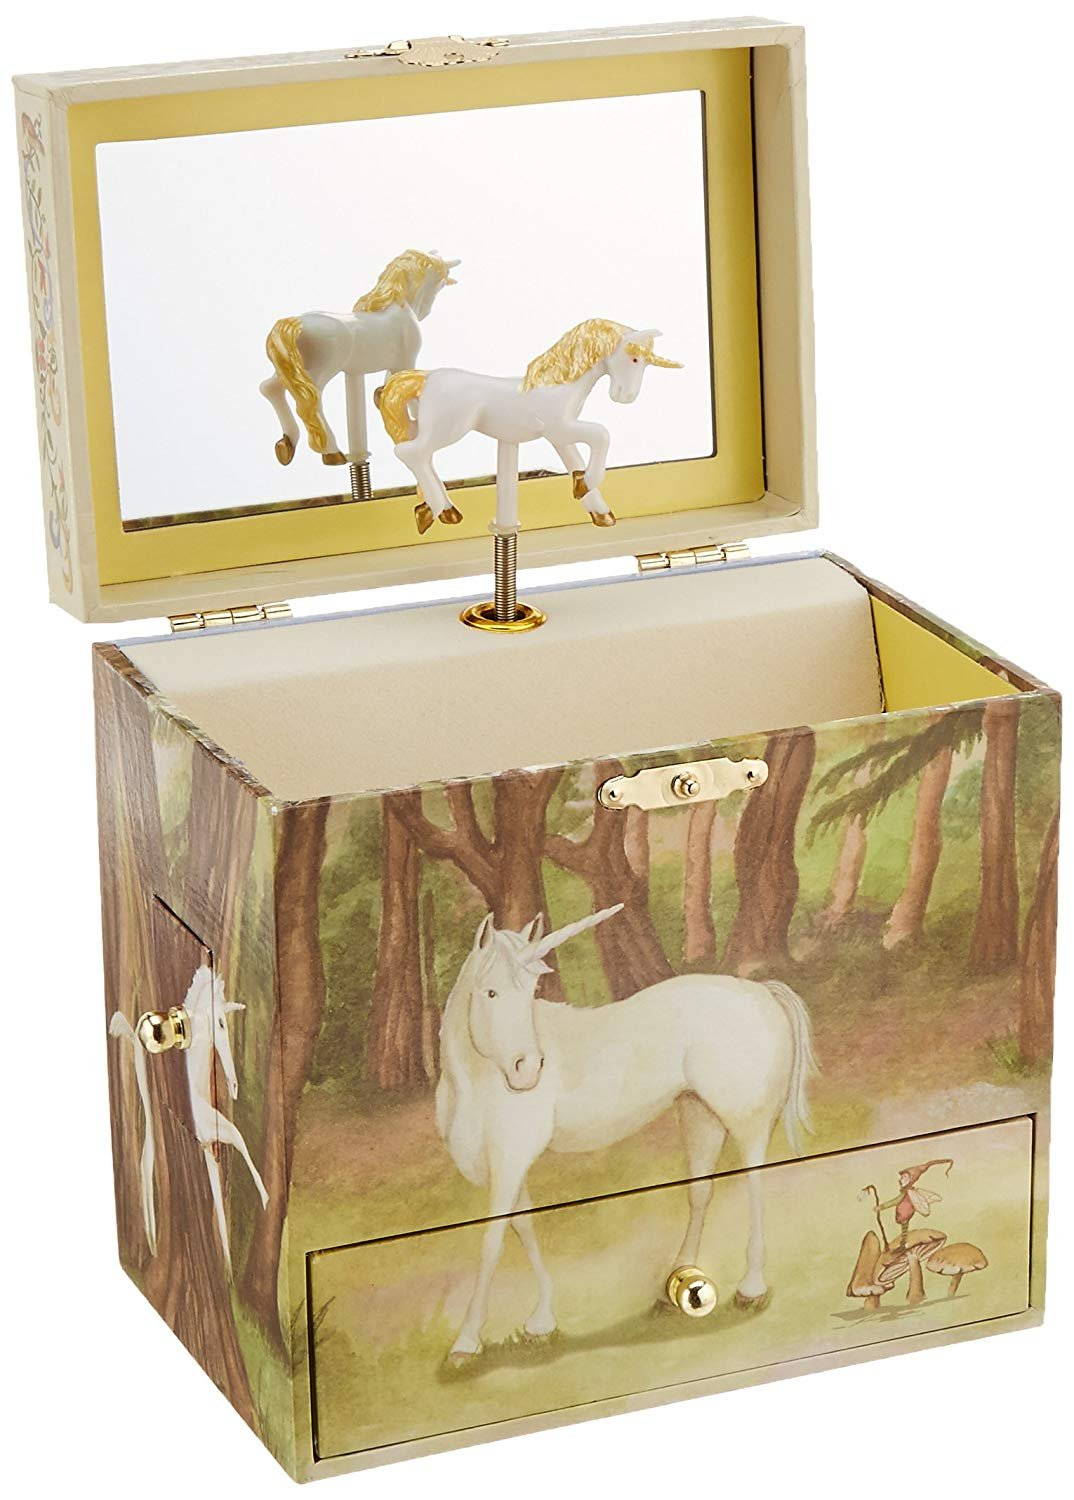 Enchanmints Unicorn Jewelry Box